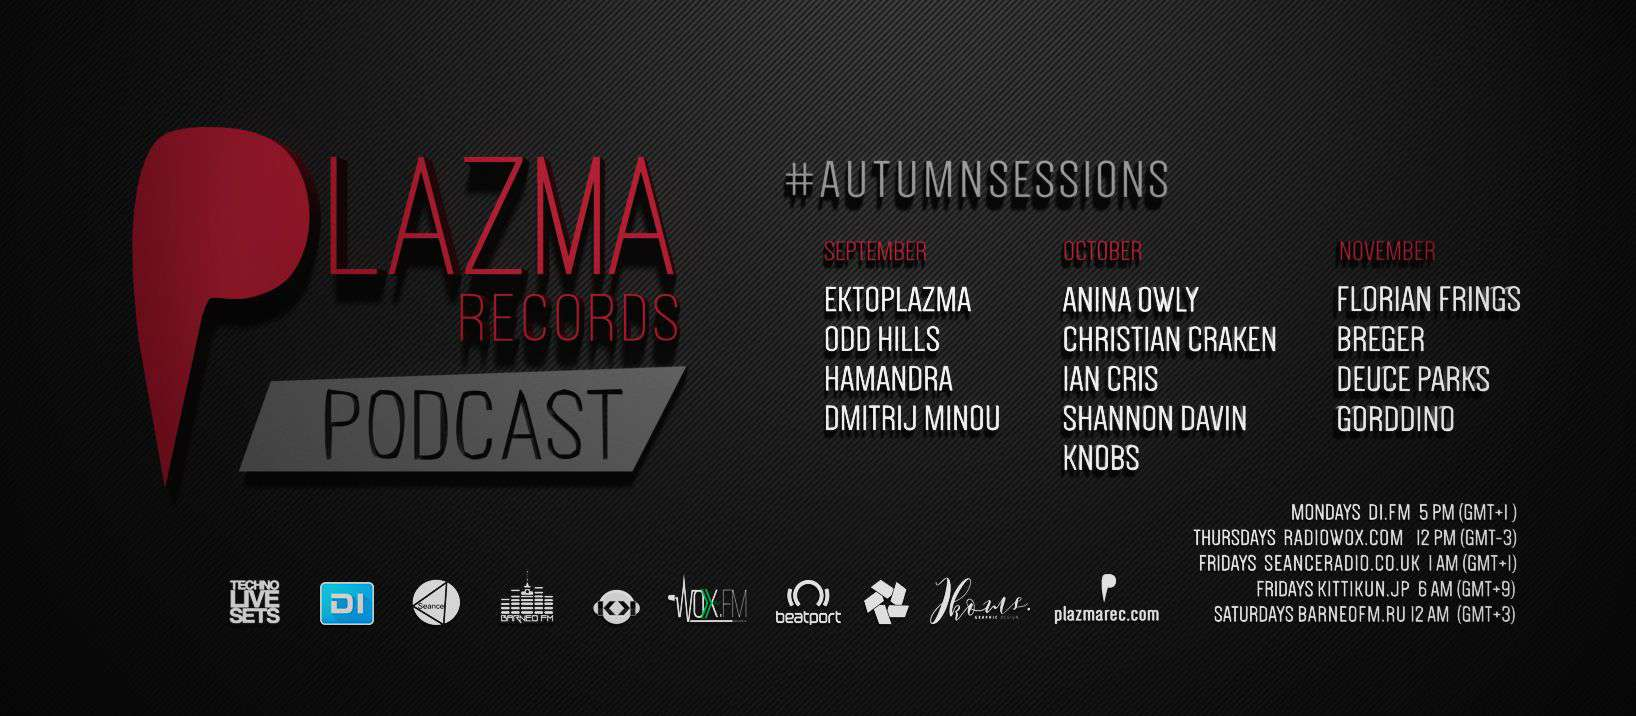 Plazma Records Podcast | Autumn Sessions'17